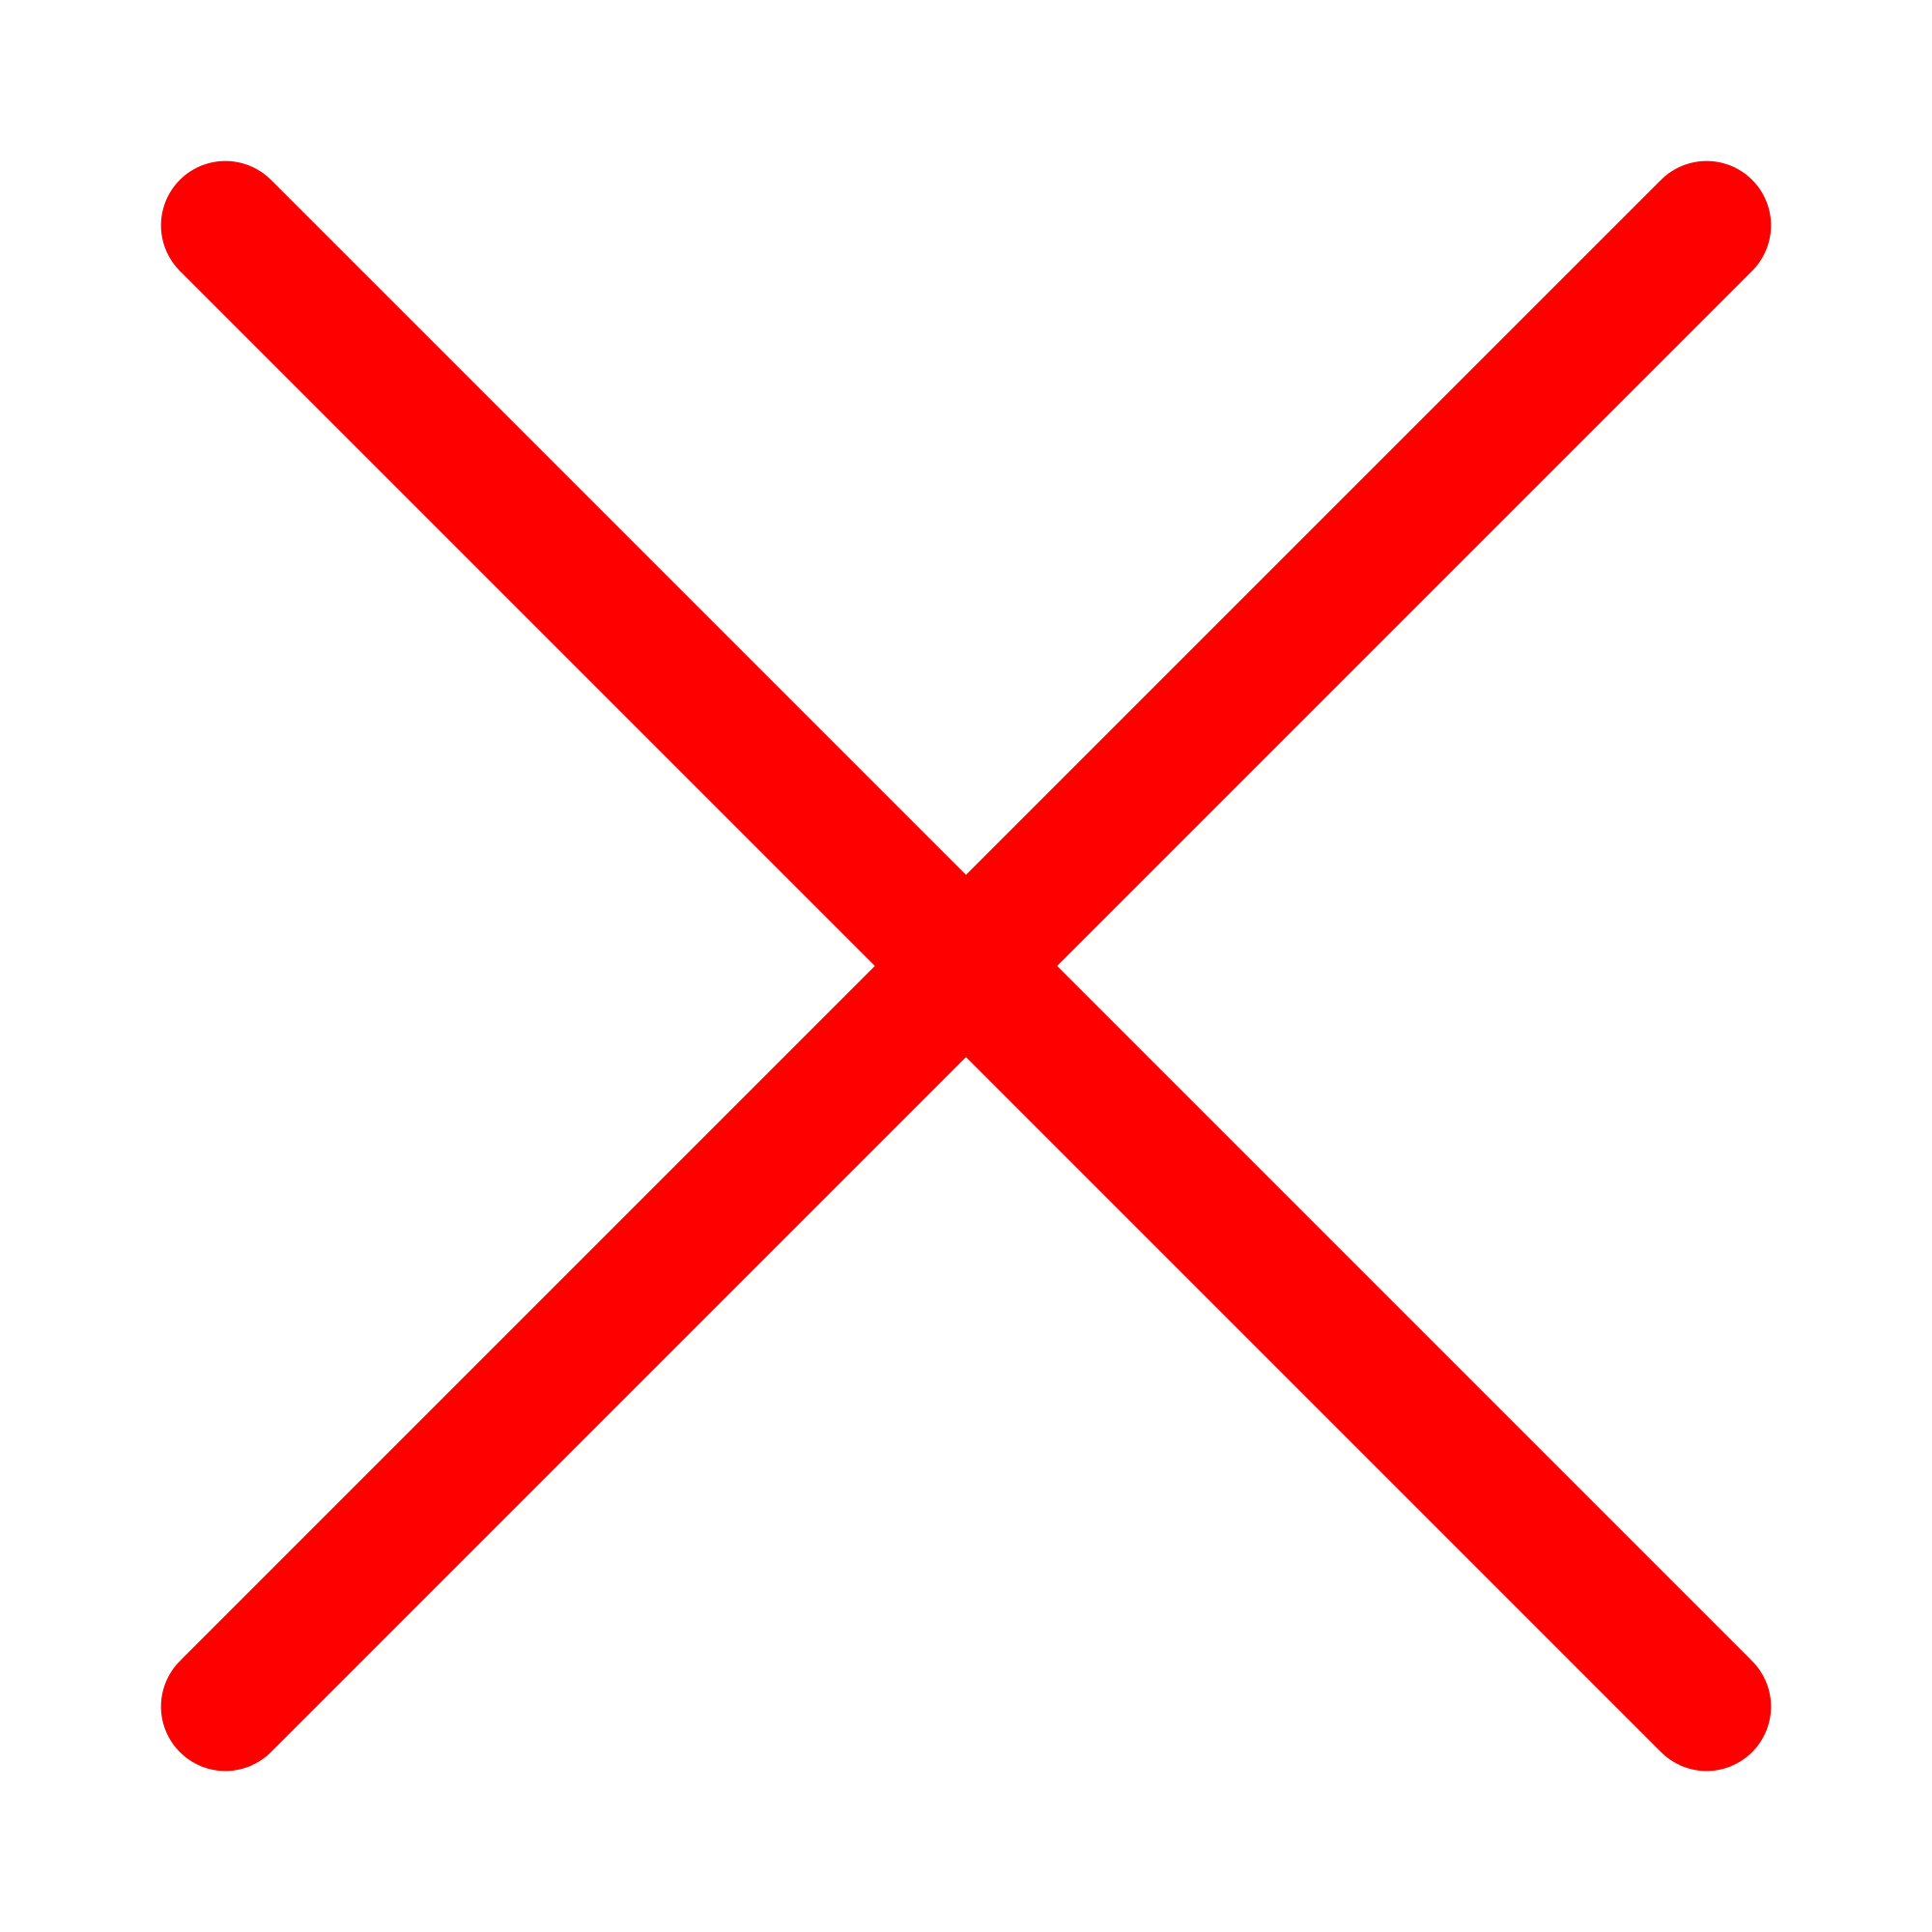 Red circle cross png. Transparent images pluspng file